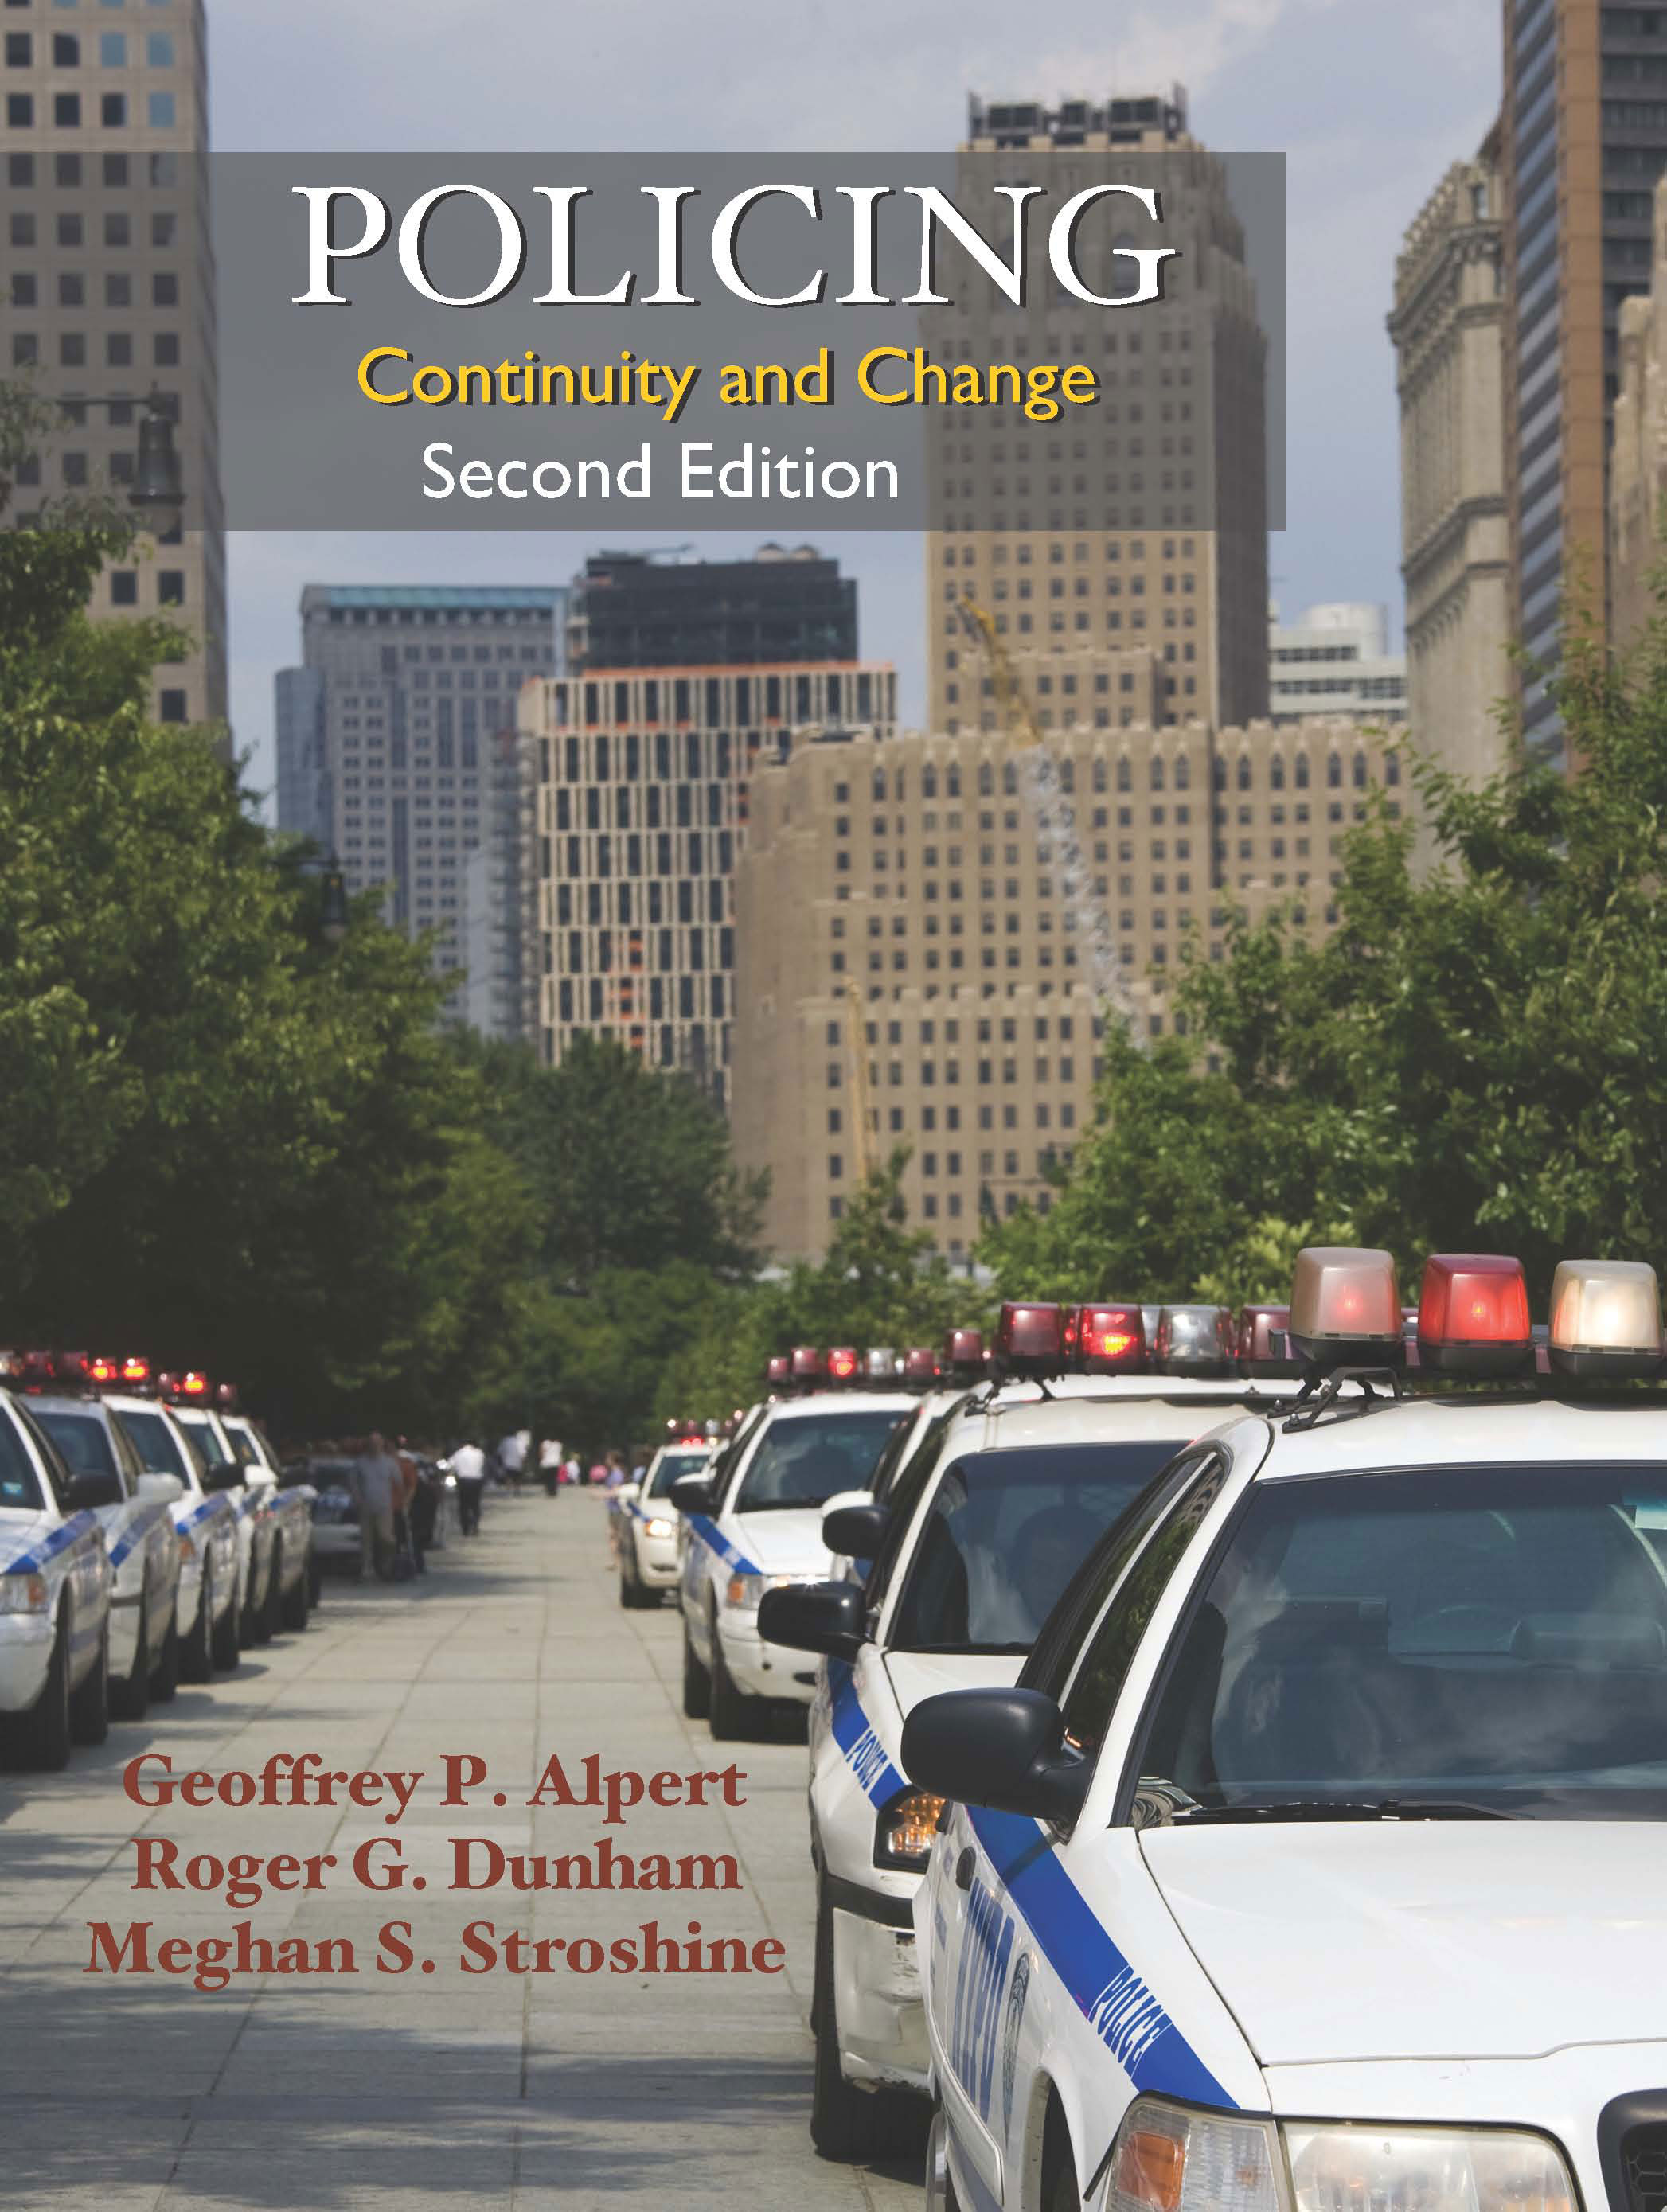 Policing: Continuity and Change by Geoffrey P. Alpert, Roger G. Dunham, Meghan S. Stroshine